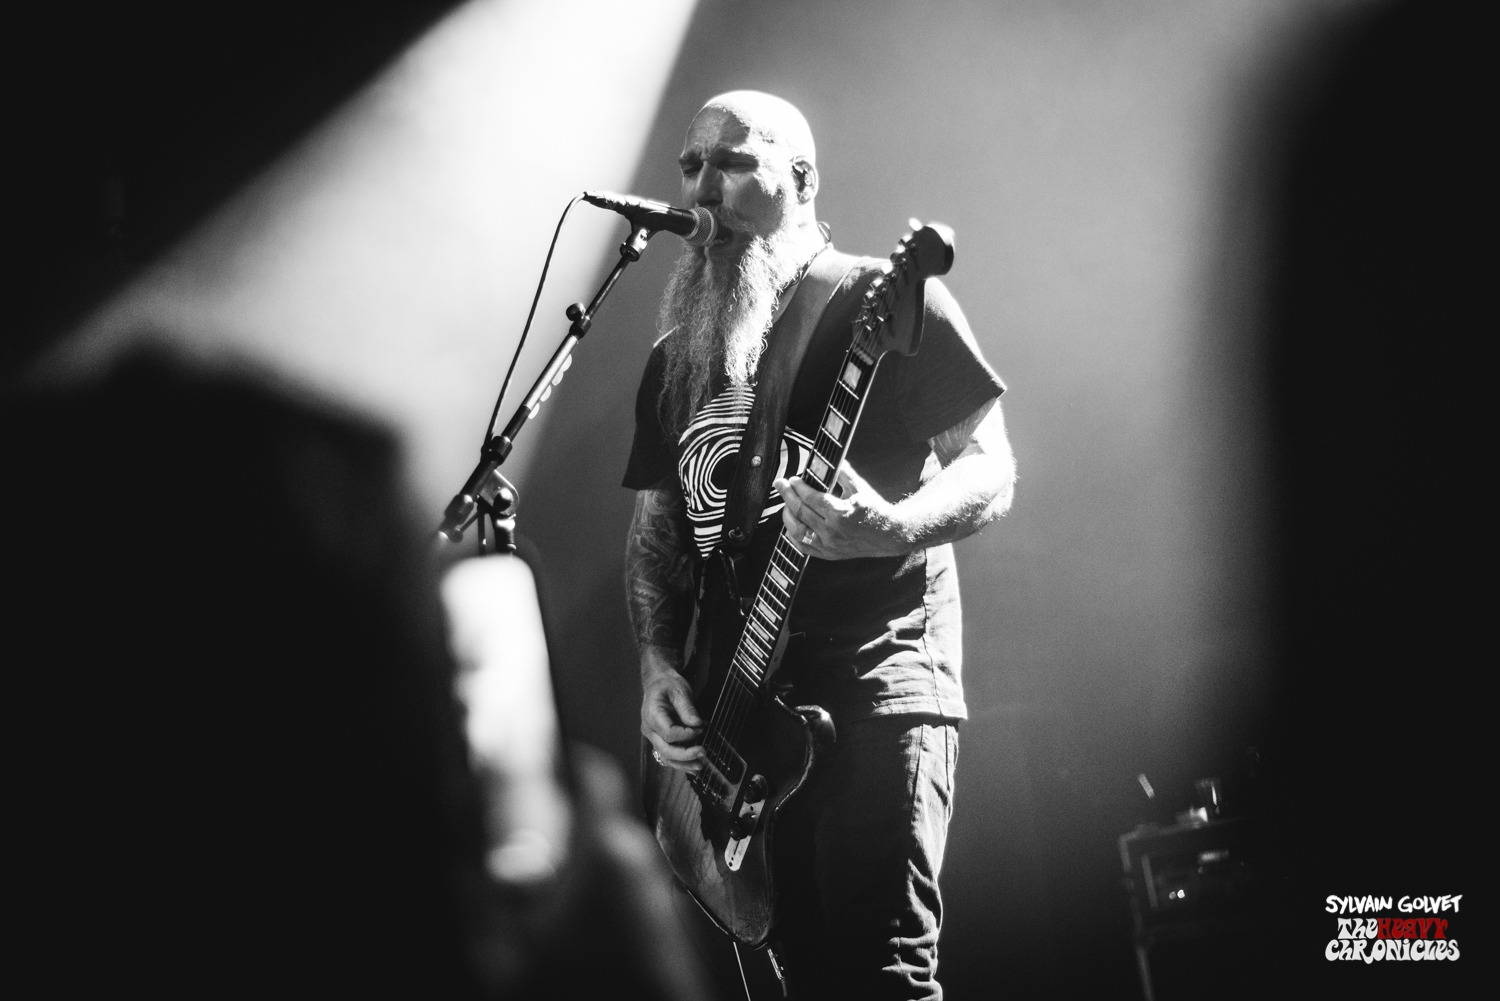 NEUROSIS-BATACLAN-THE-HEAVY-CHRONICLES-180719-23